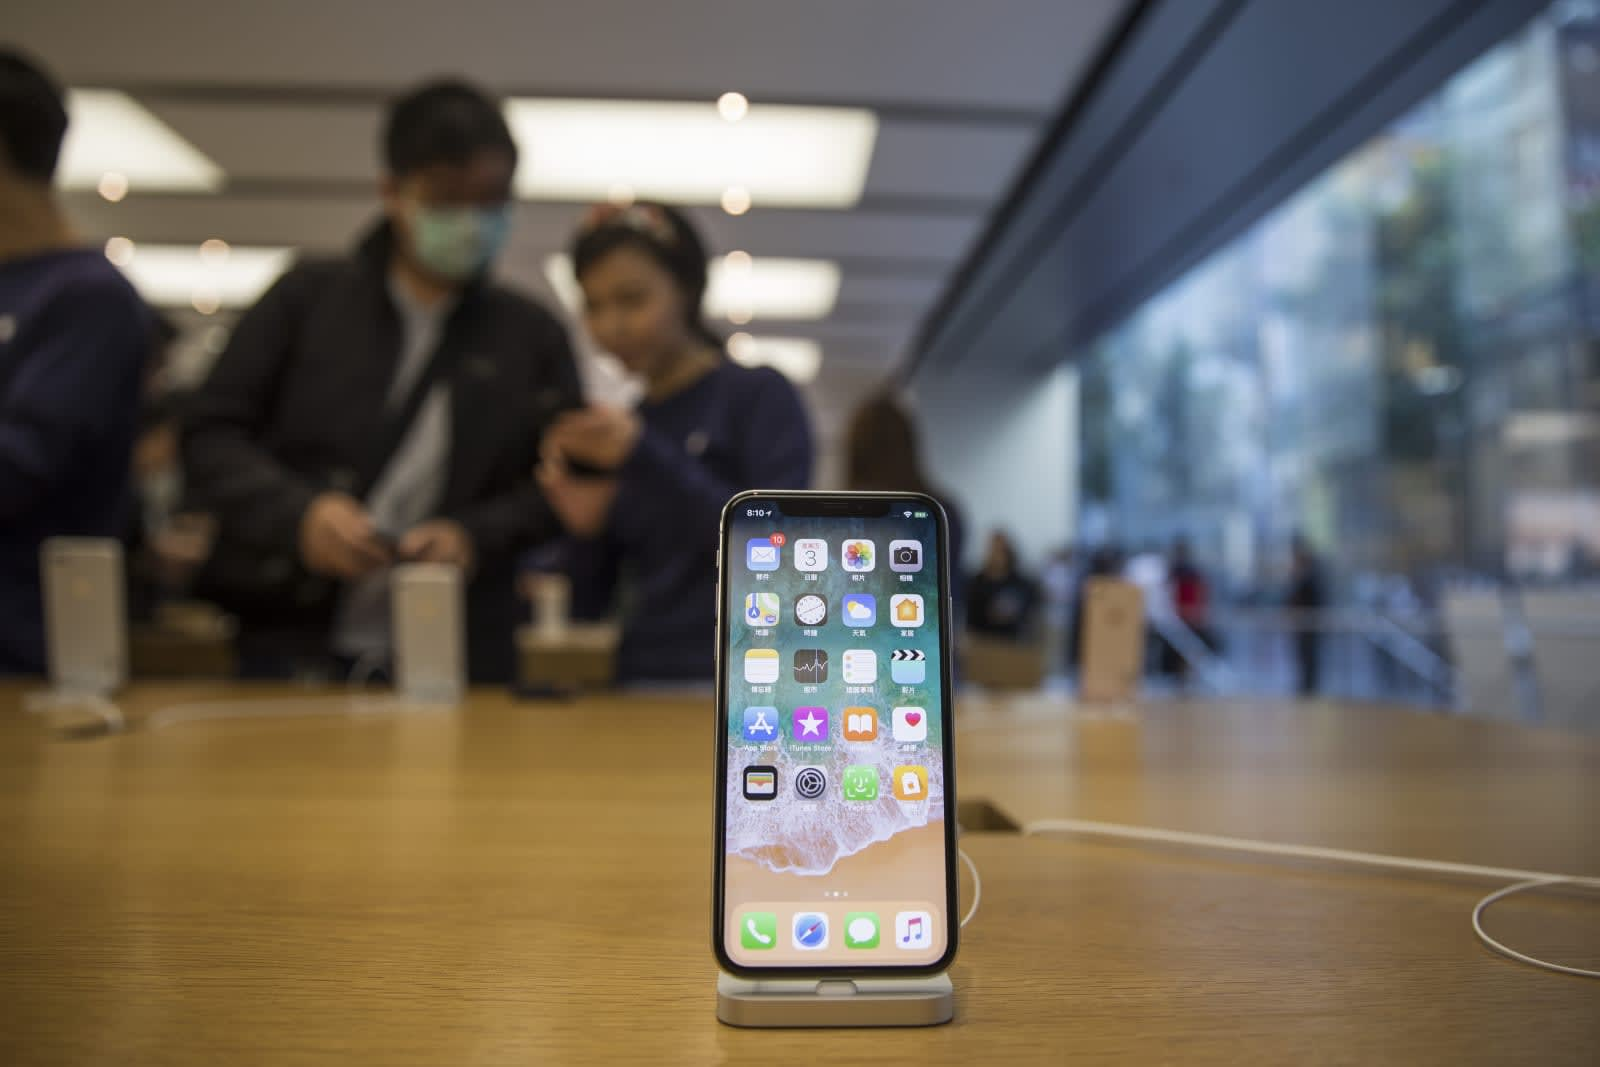 Apple clamps down on calling apps in China to obey local laws